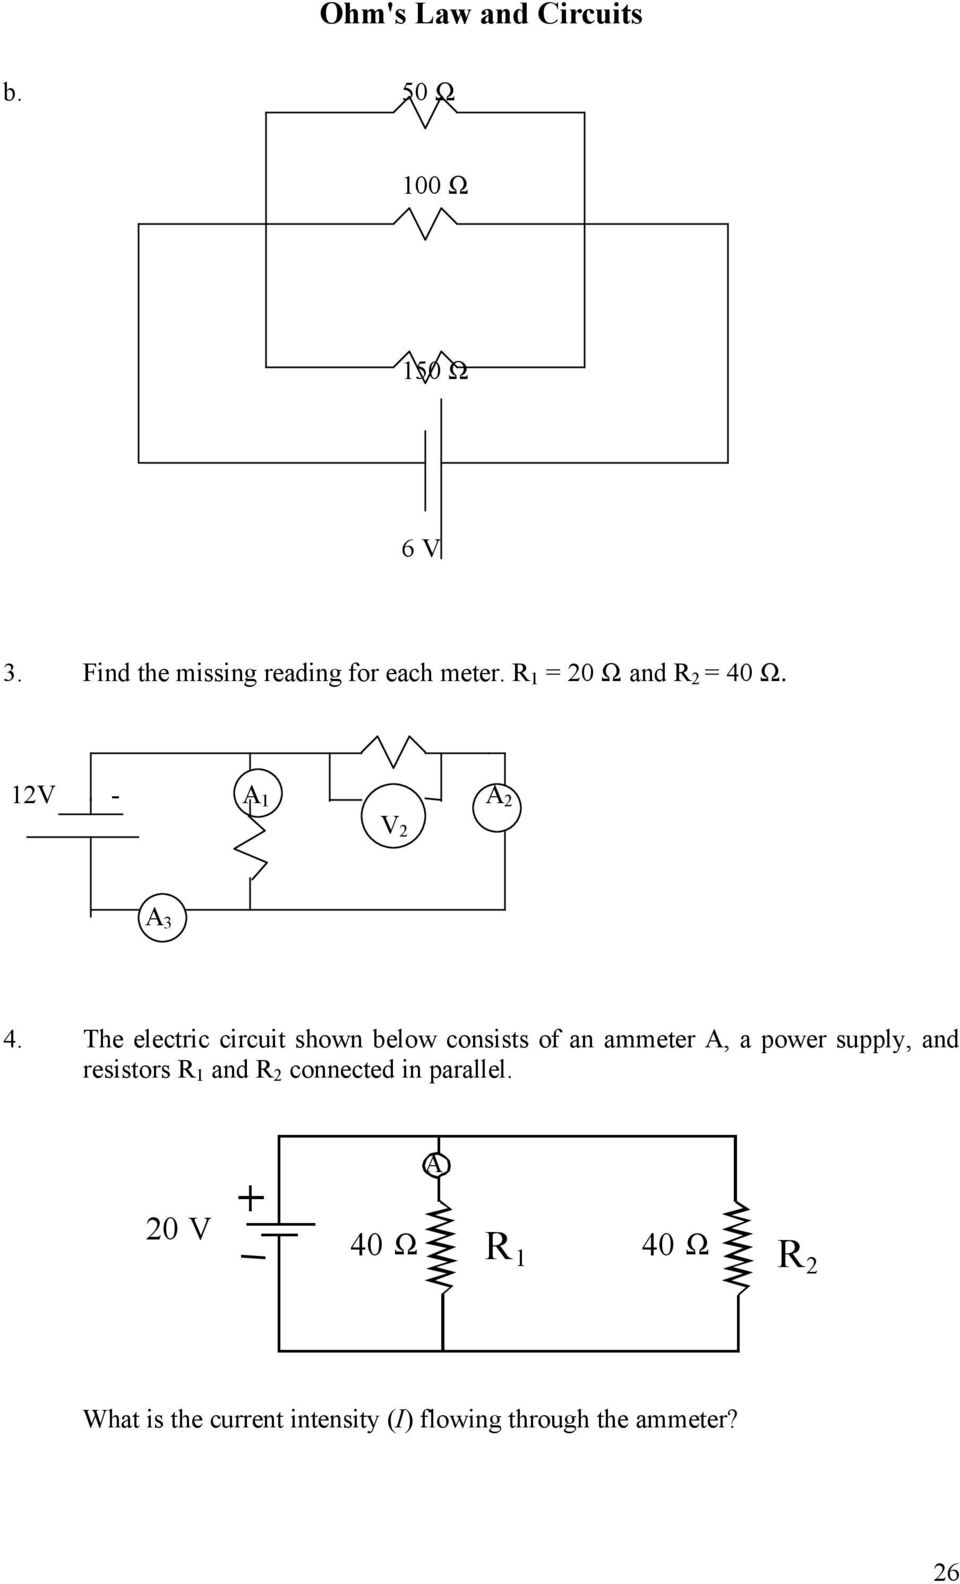 The electric circuit shown below consists of an ammeter A, a power supply, and